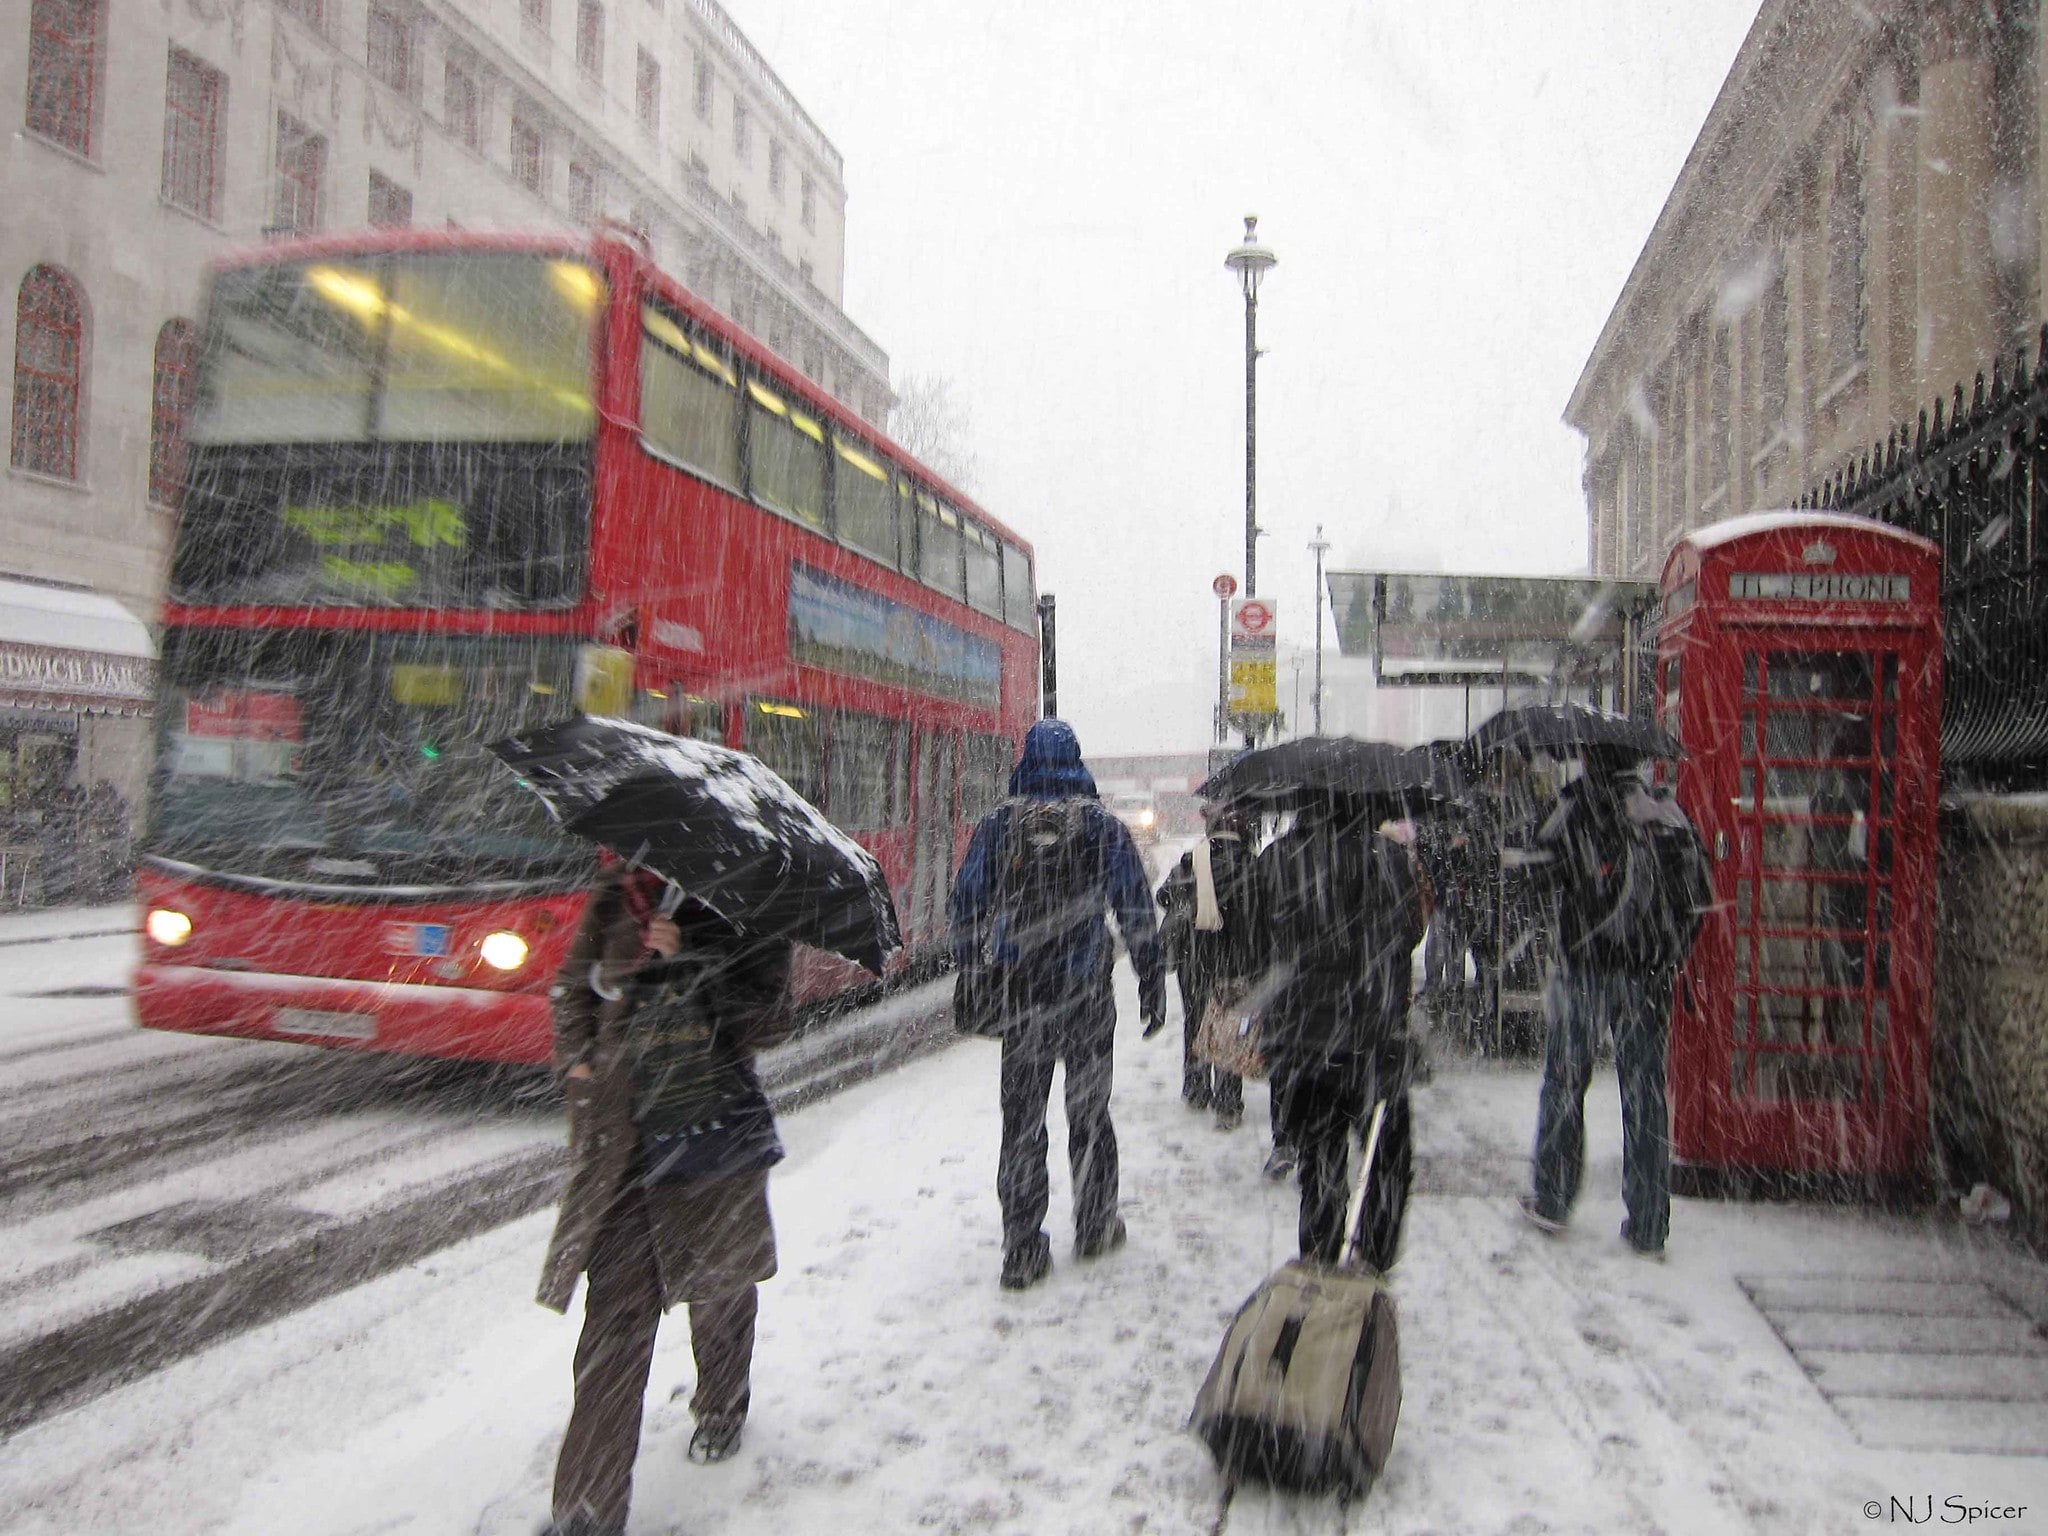 Commuters struggle through the snow on a London street as a red london bus drives past, the sleet and snow pelts down